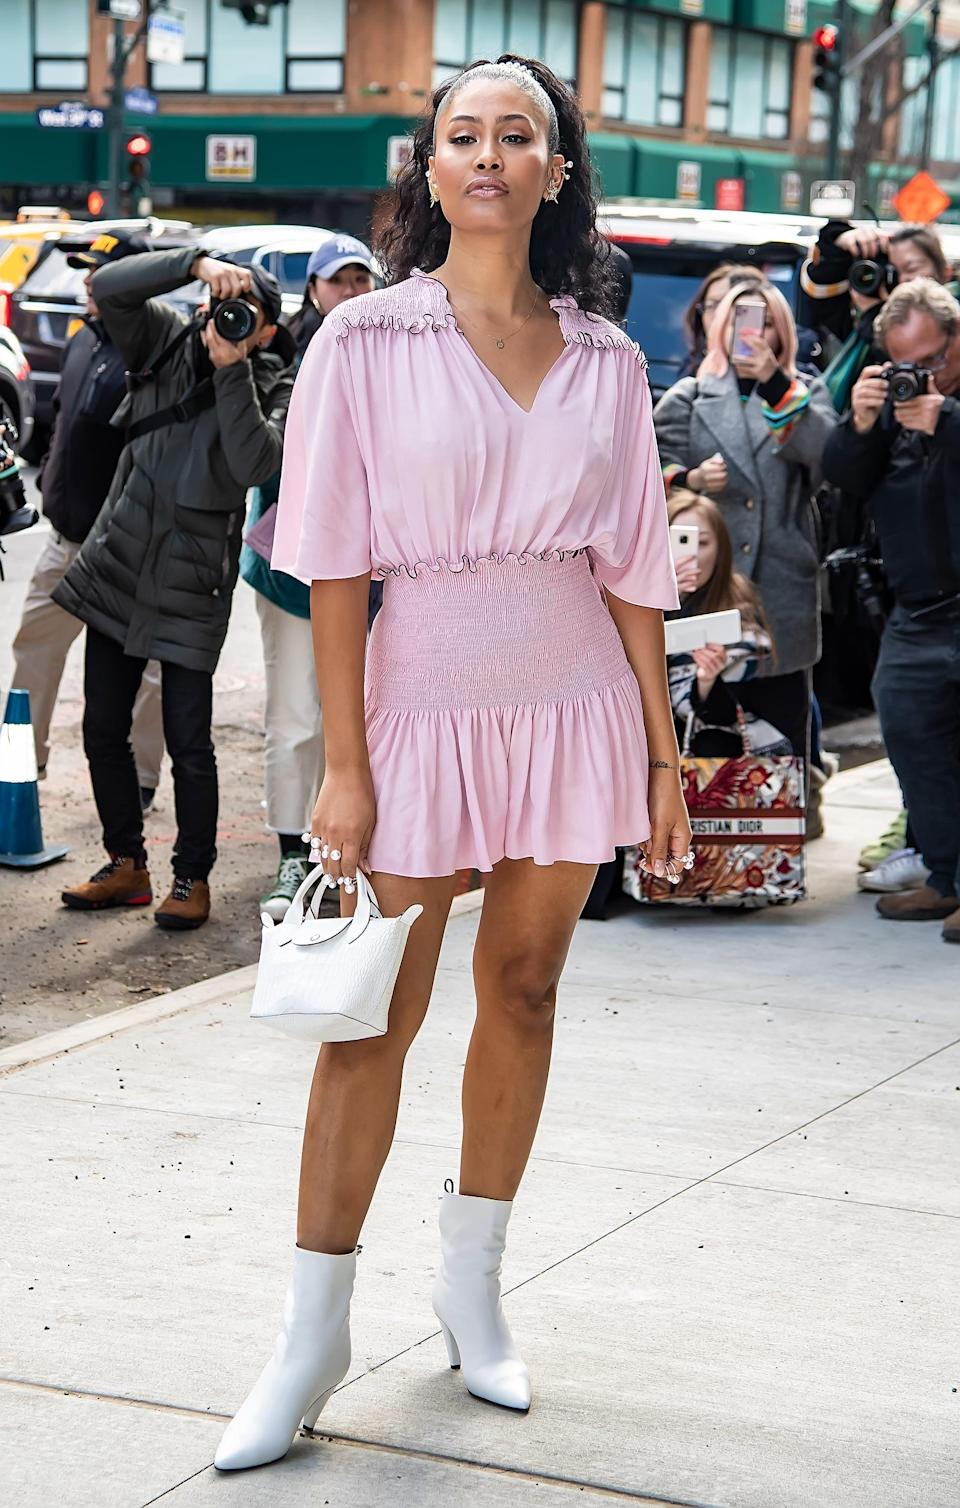 <p>In 2017, Leyna Bloom was one of the few openly transgender models walking the runways at Fashion Week and she is an activist for the LGBTQIA+ and Black communities. As the second trans model to be featured in <b>SI Swim</b>, alongside Valentina, she also made history as the first Black and Asian trans woman in the iconic magazine.</p>